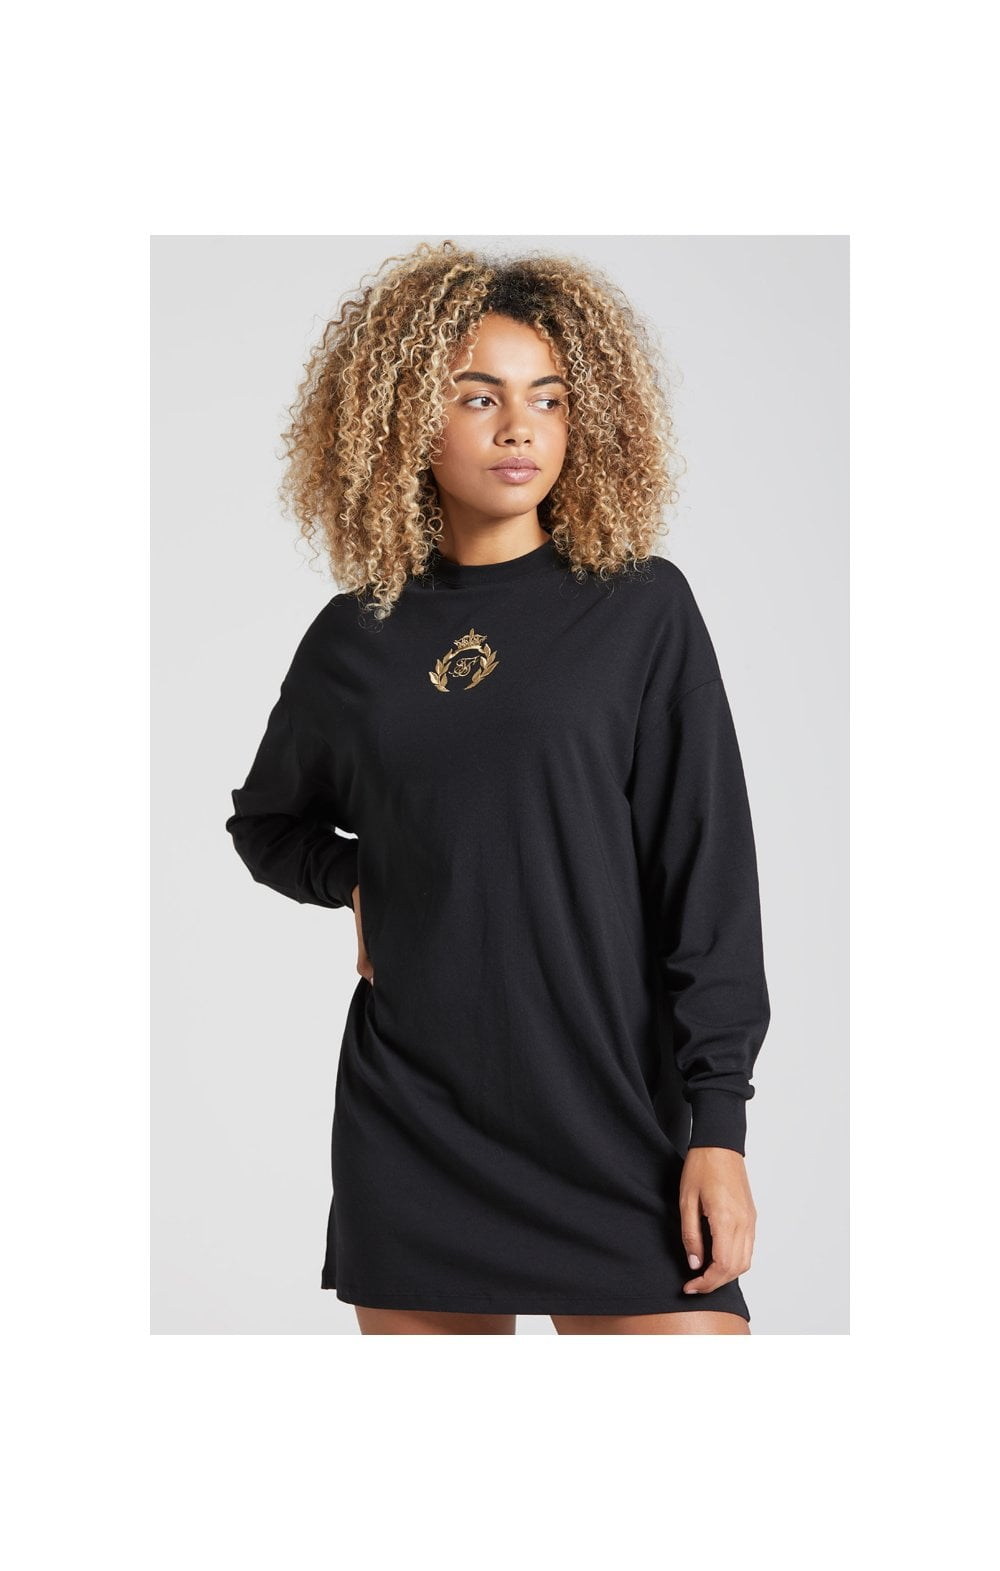 SikSilk Prestige Tshirt Dress - Black (3)